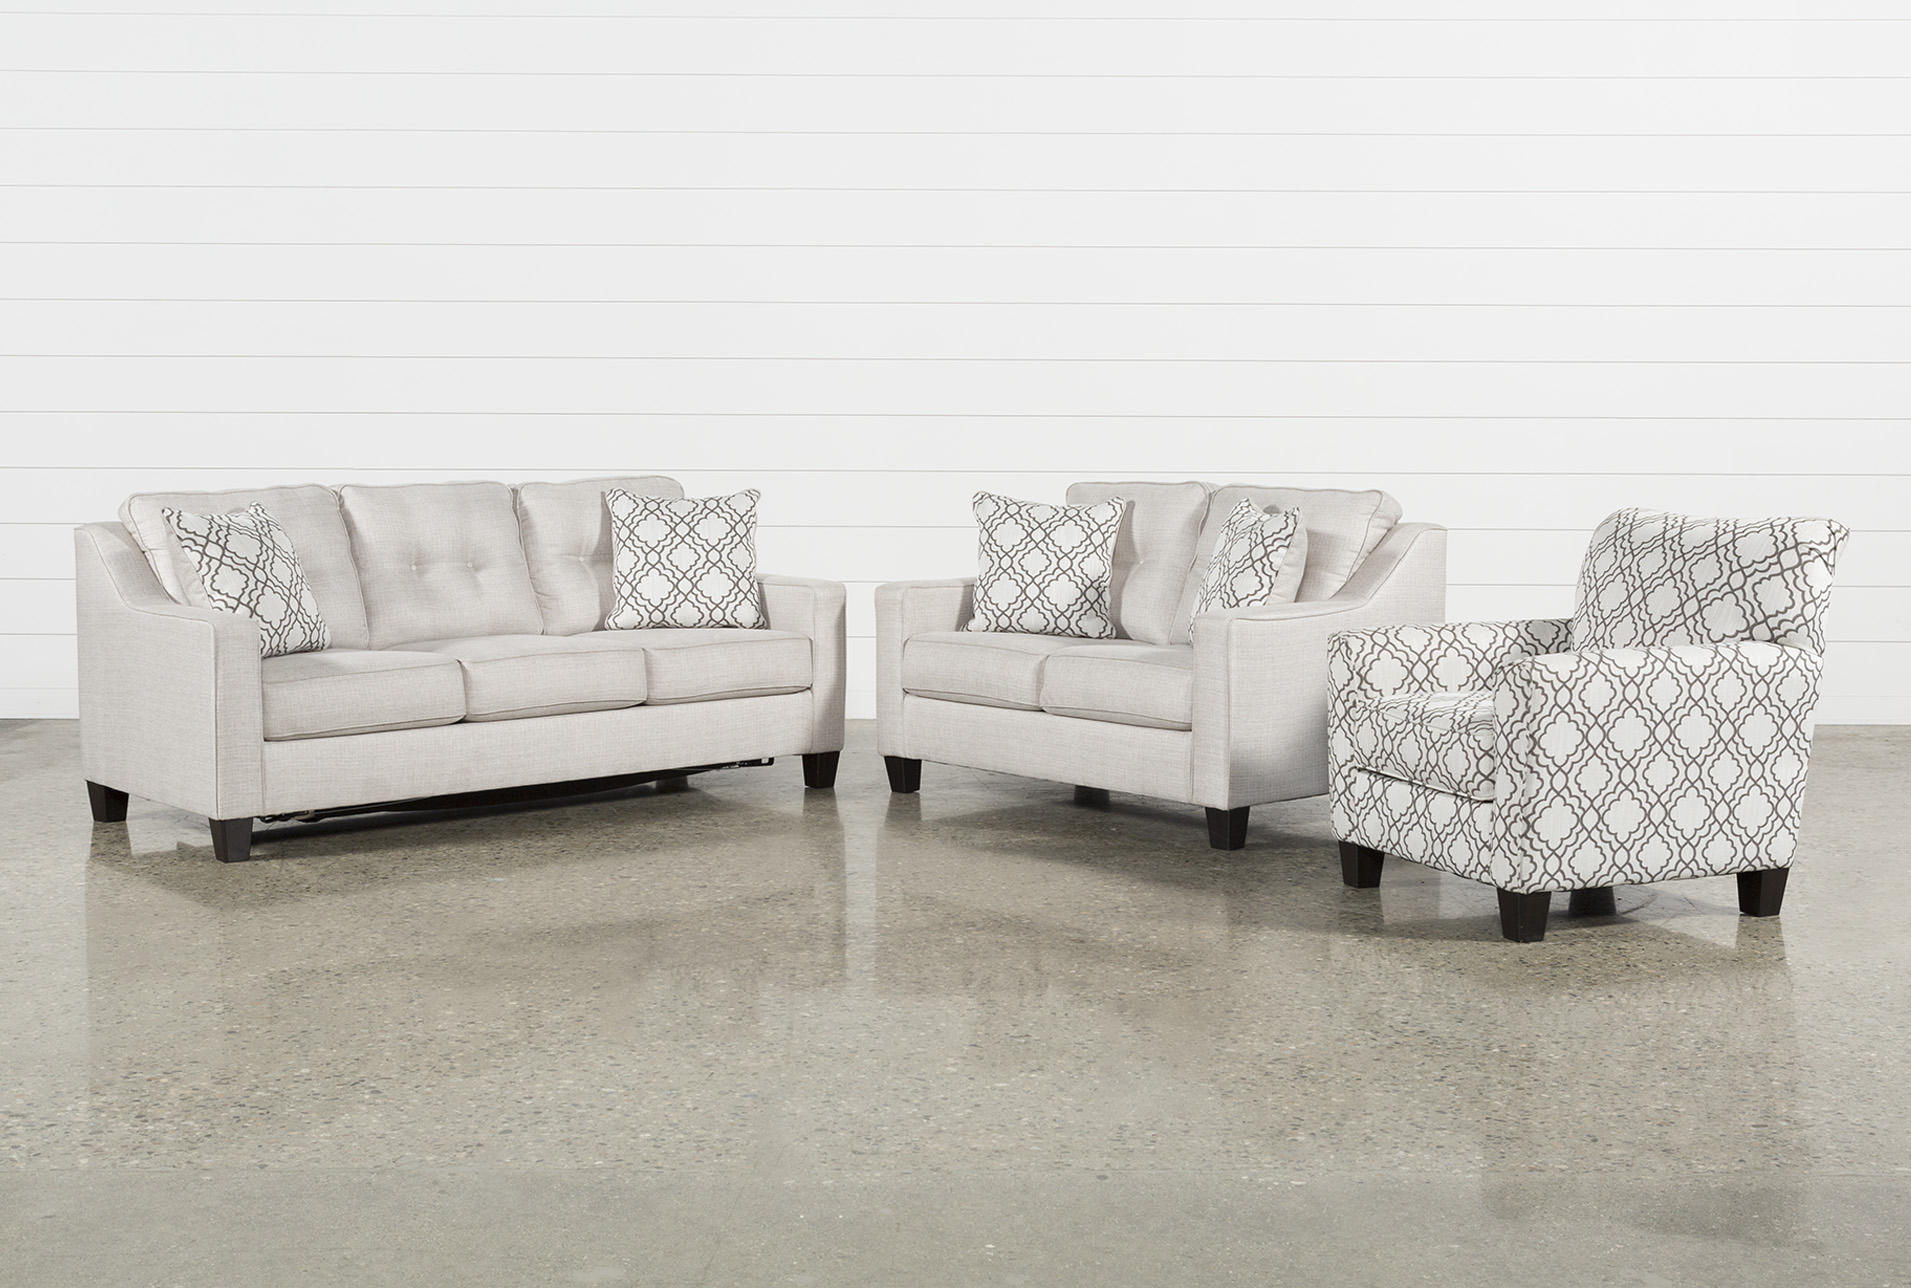 Linday Park 3 Piece Living Room Set With Accent Chair (Qty: 1) Has Been  Successfully Added To Your Cart.